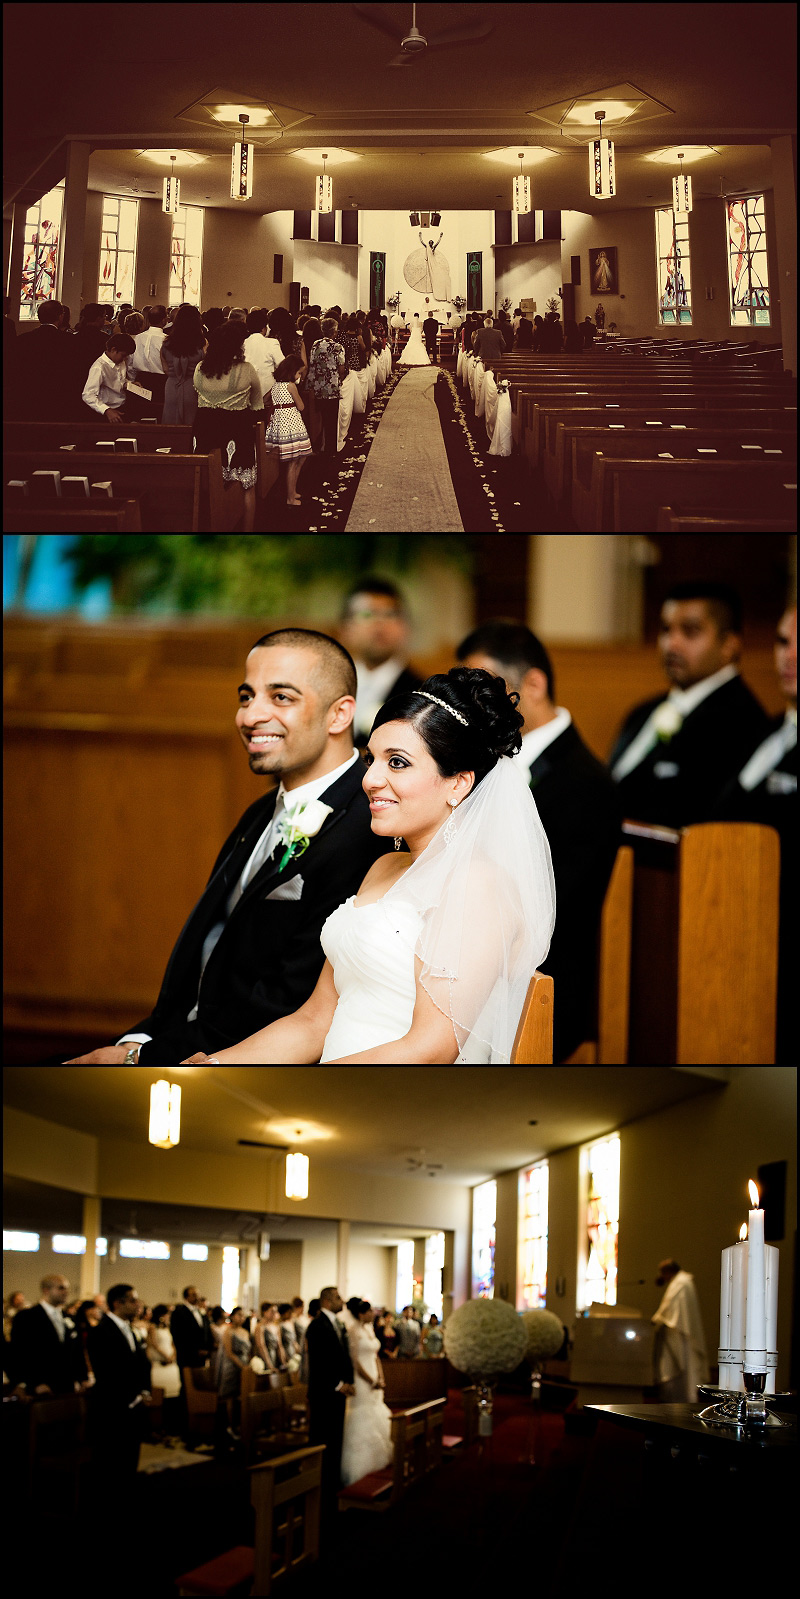 Catholic Churches for wedding in Toronto